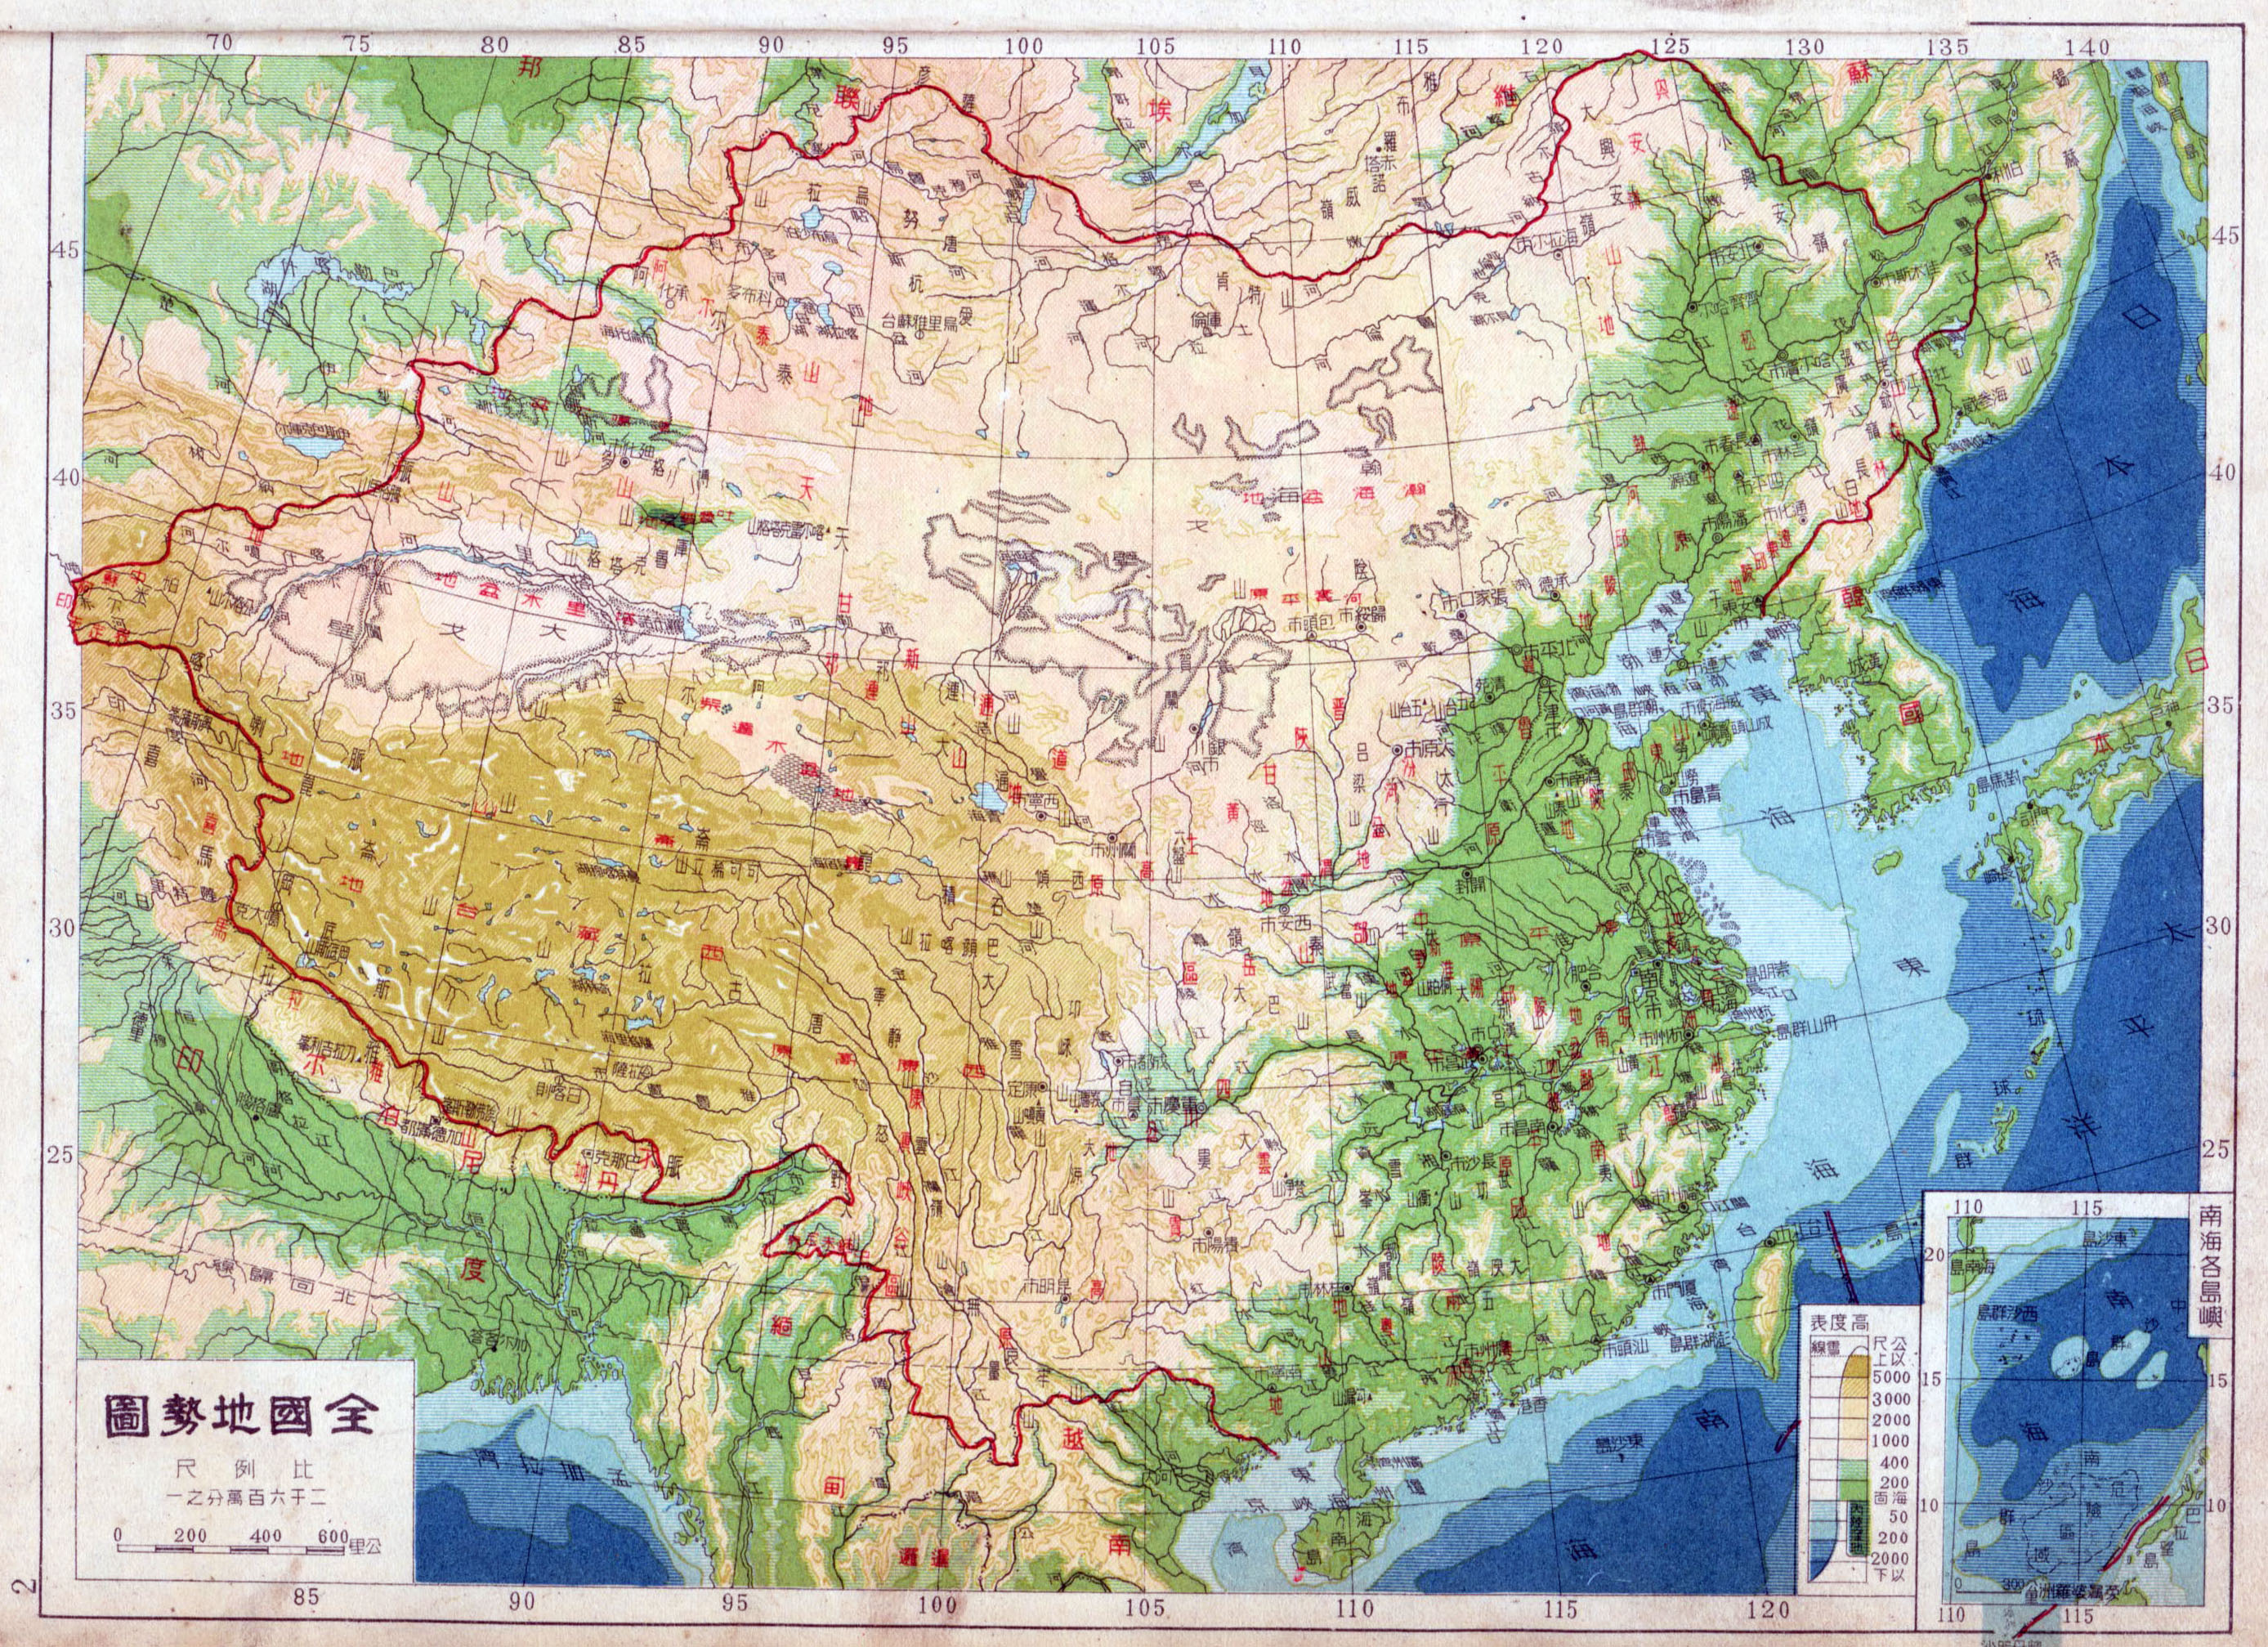 Maps of China | Detailed map of China in English | Tourist map of